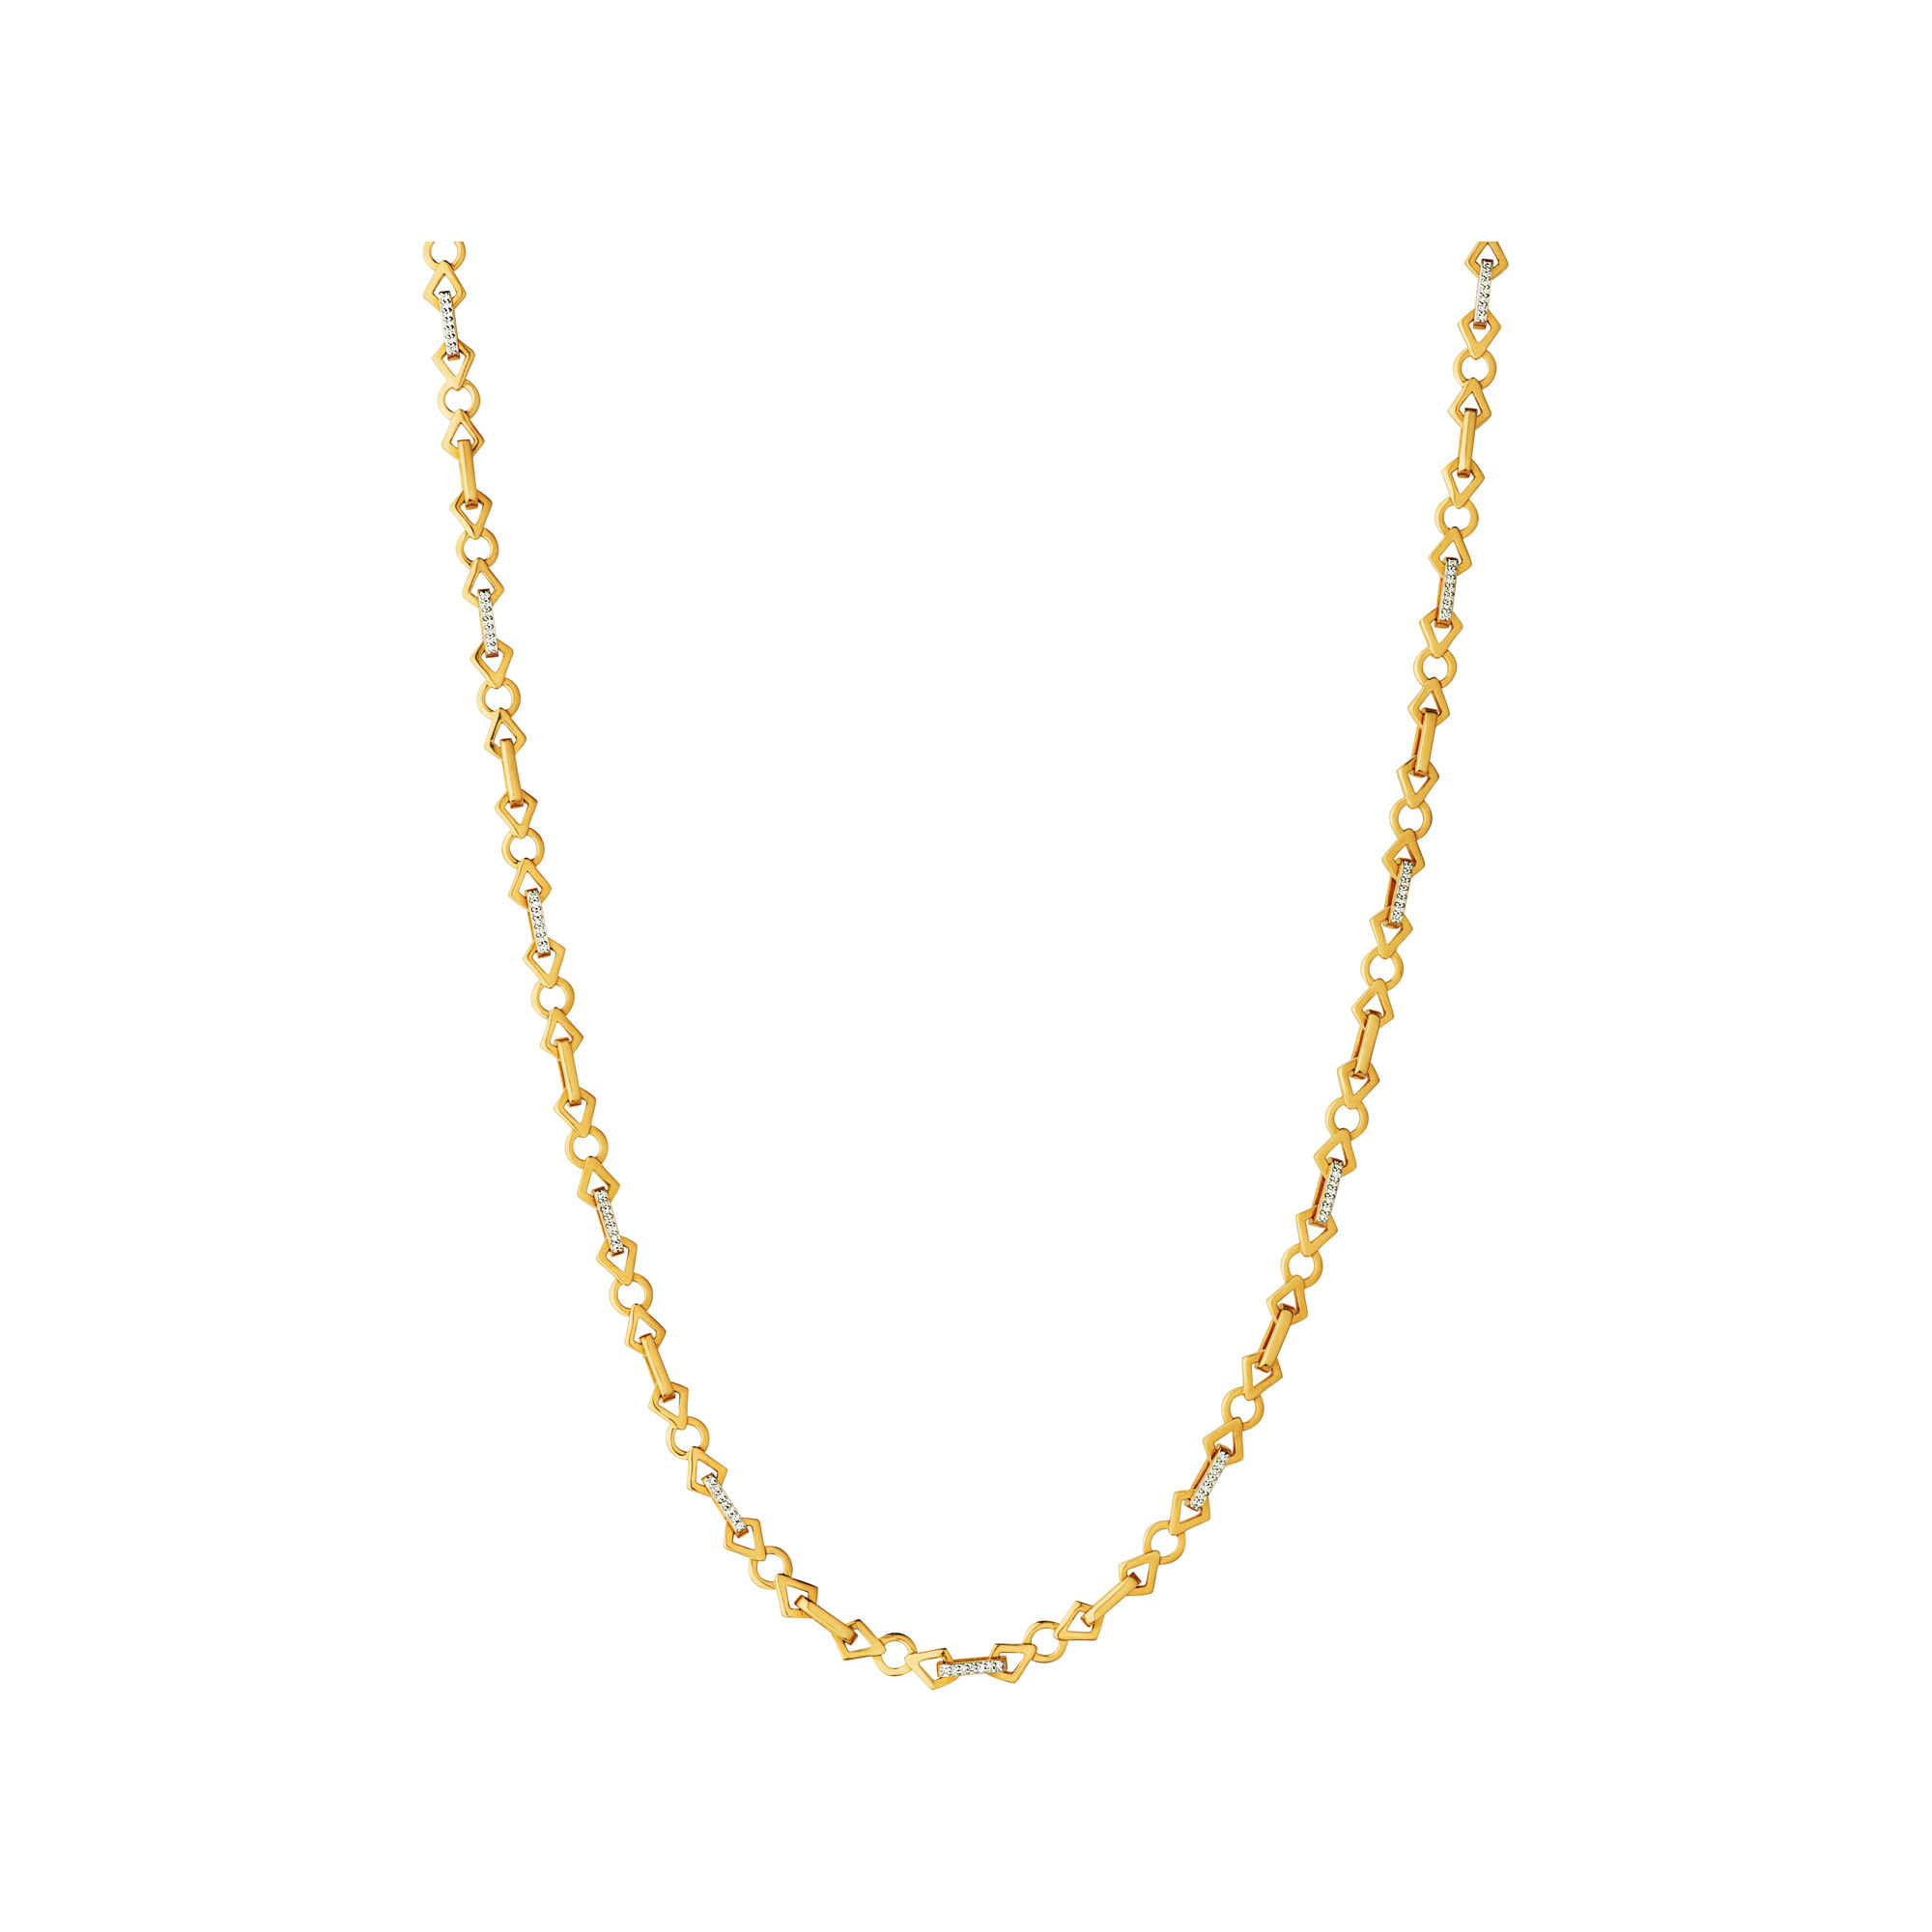 yet necklace link elegant add simple gold a necklaces ladies yellow new open chain bonded